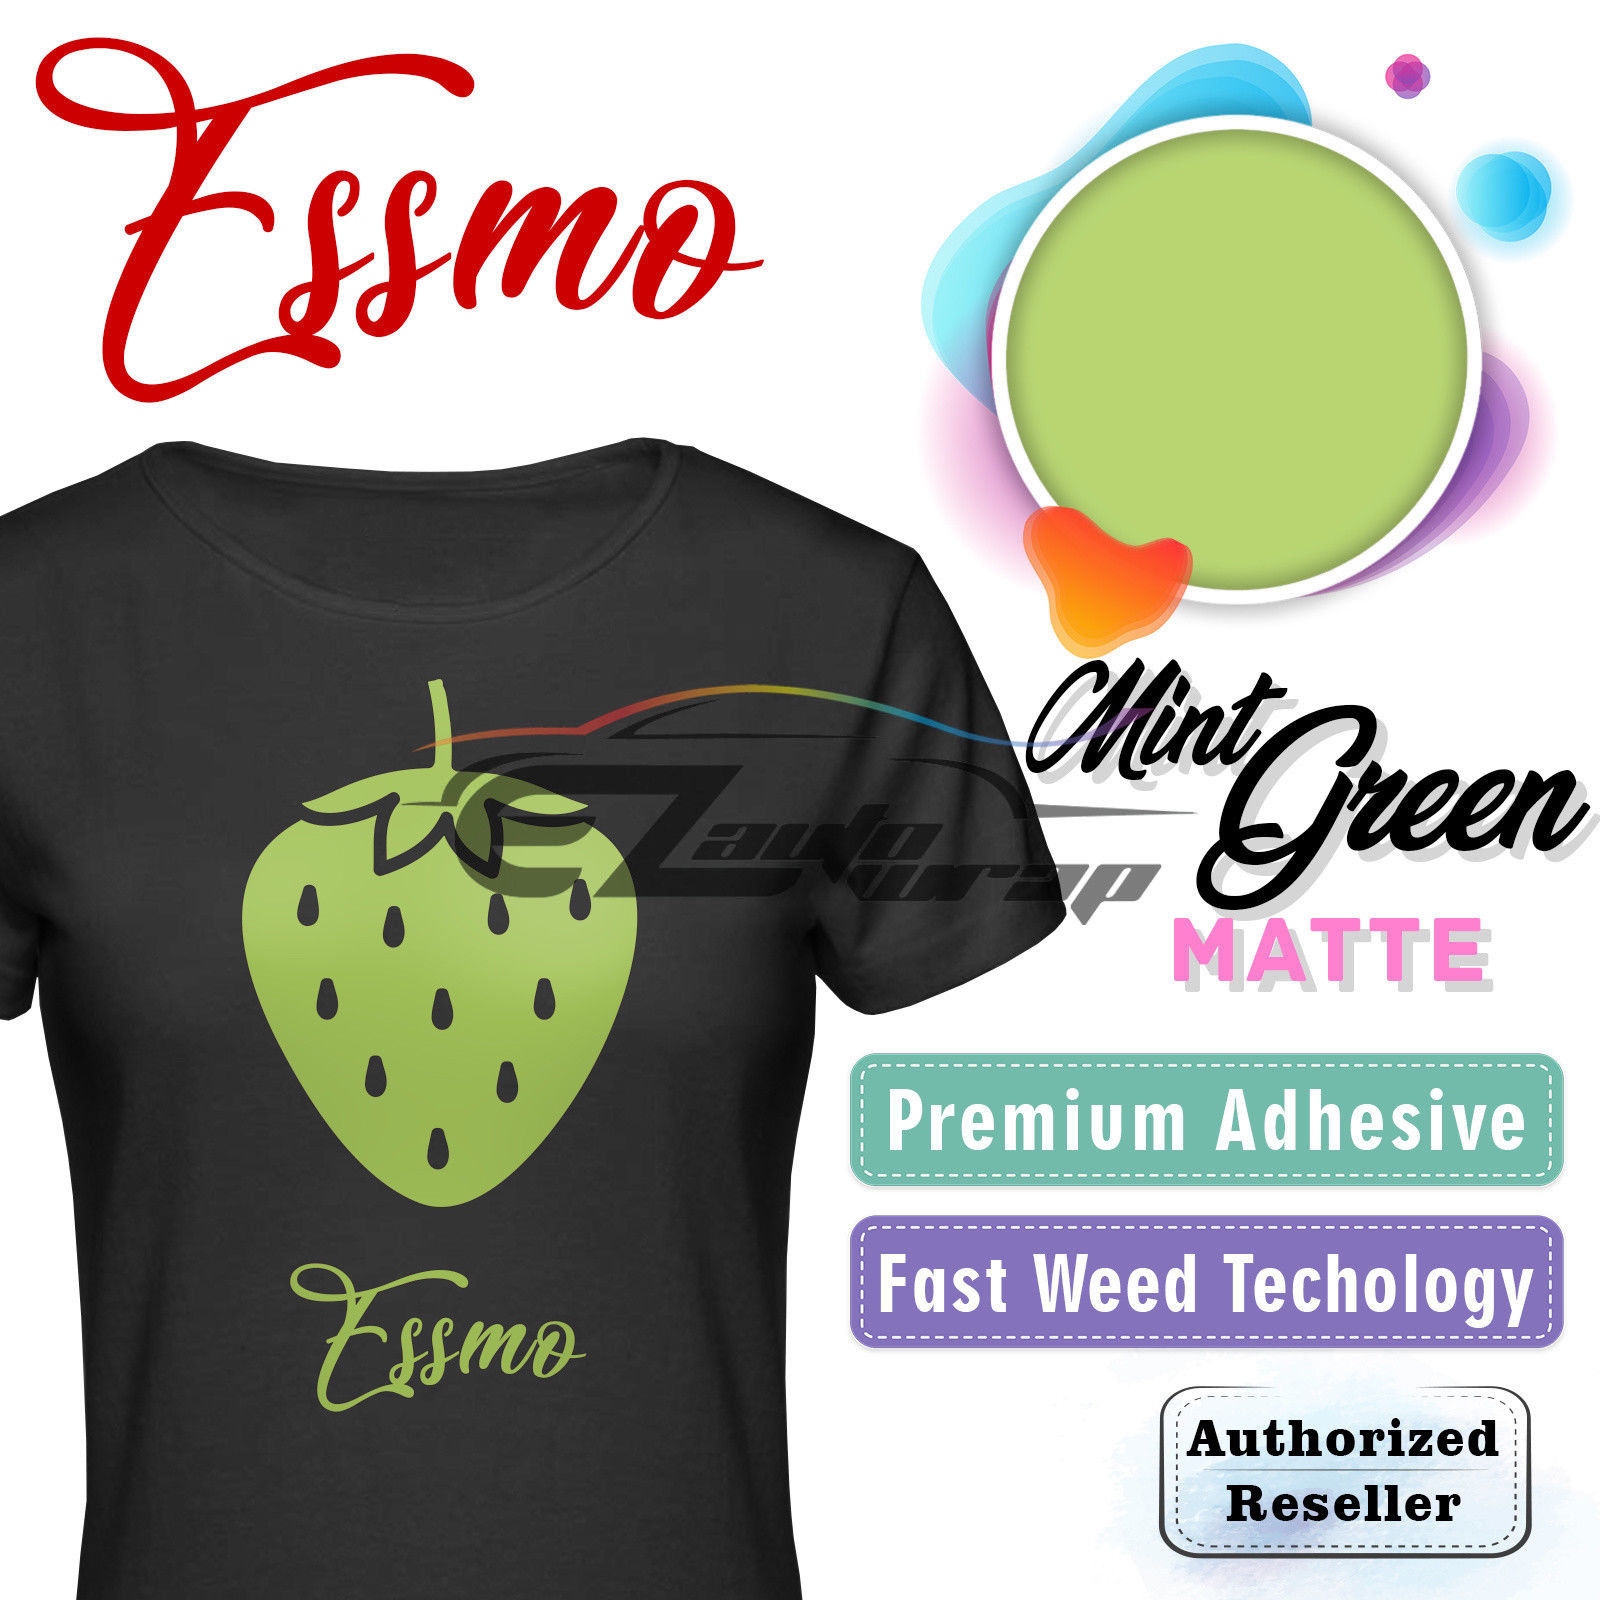 "ESSMO Mint Green Matte Solid Heat Transfer Vinyl HTV Sheet T-Shirt 20"" Wide Iron On Heat Press 20""x36"""